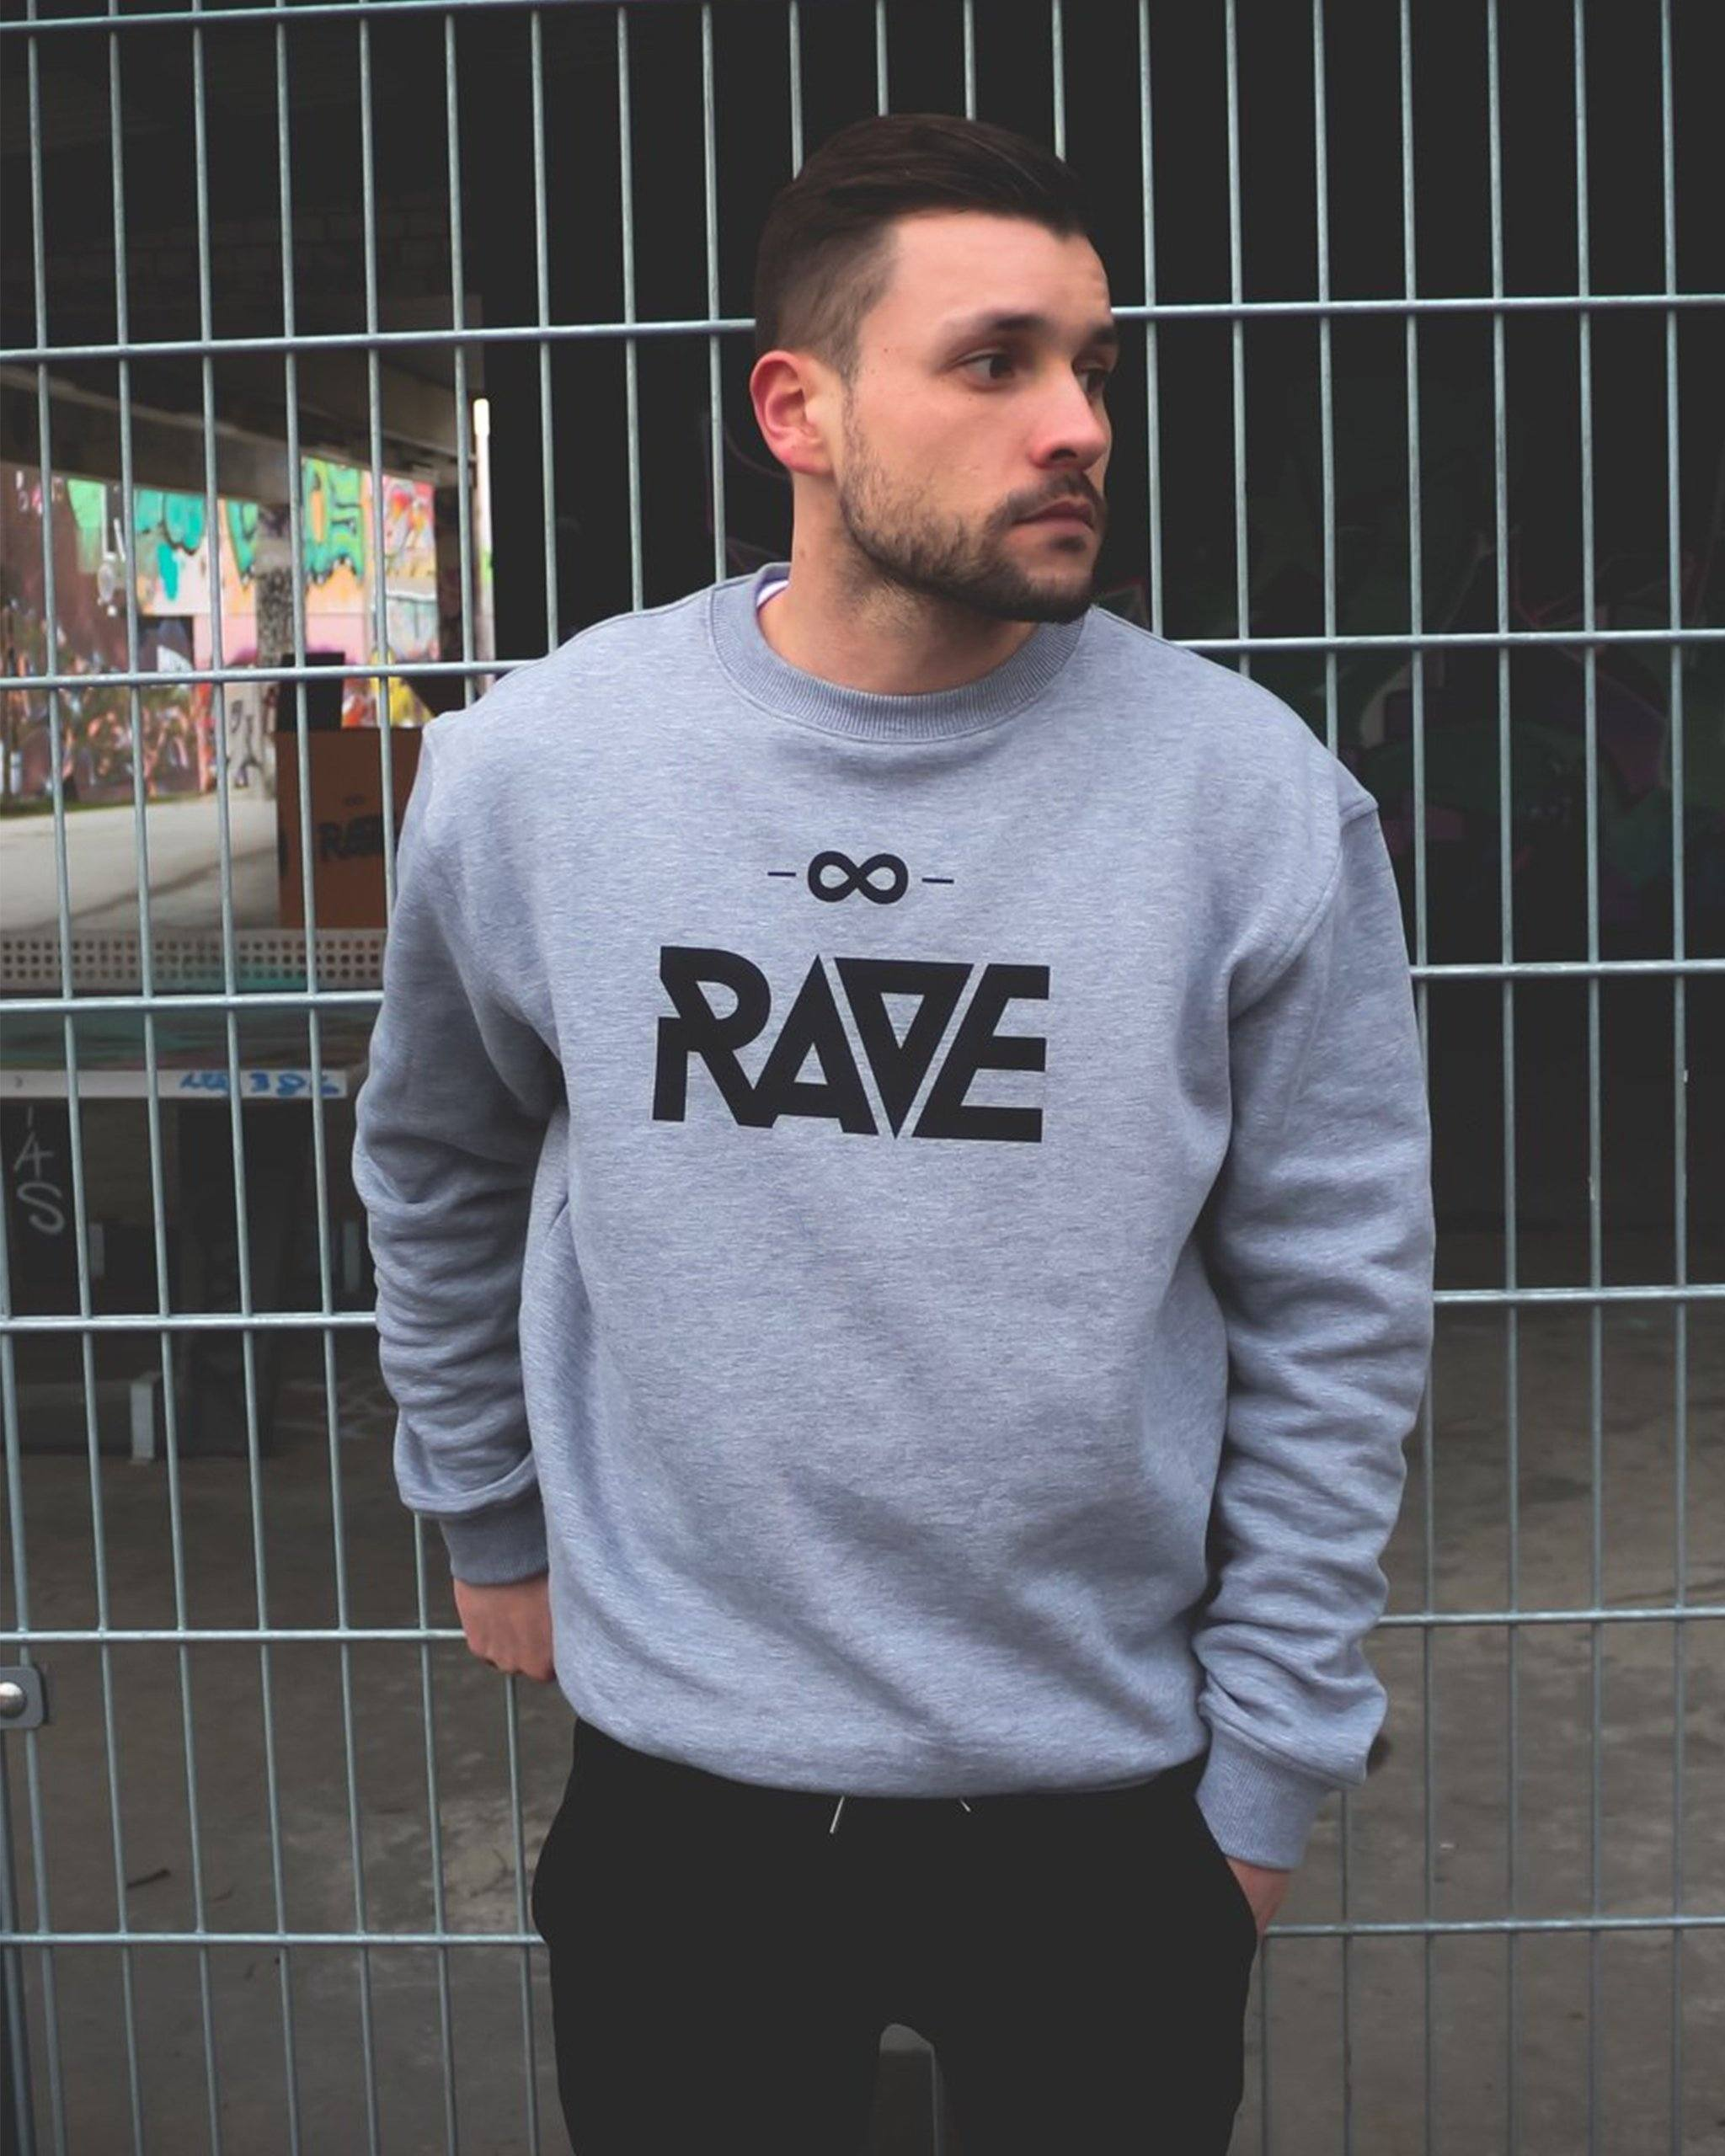 Rave techno sweater